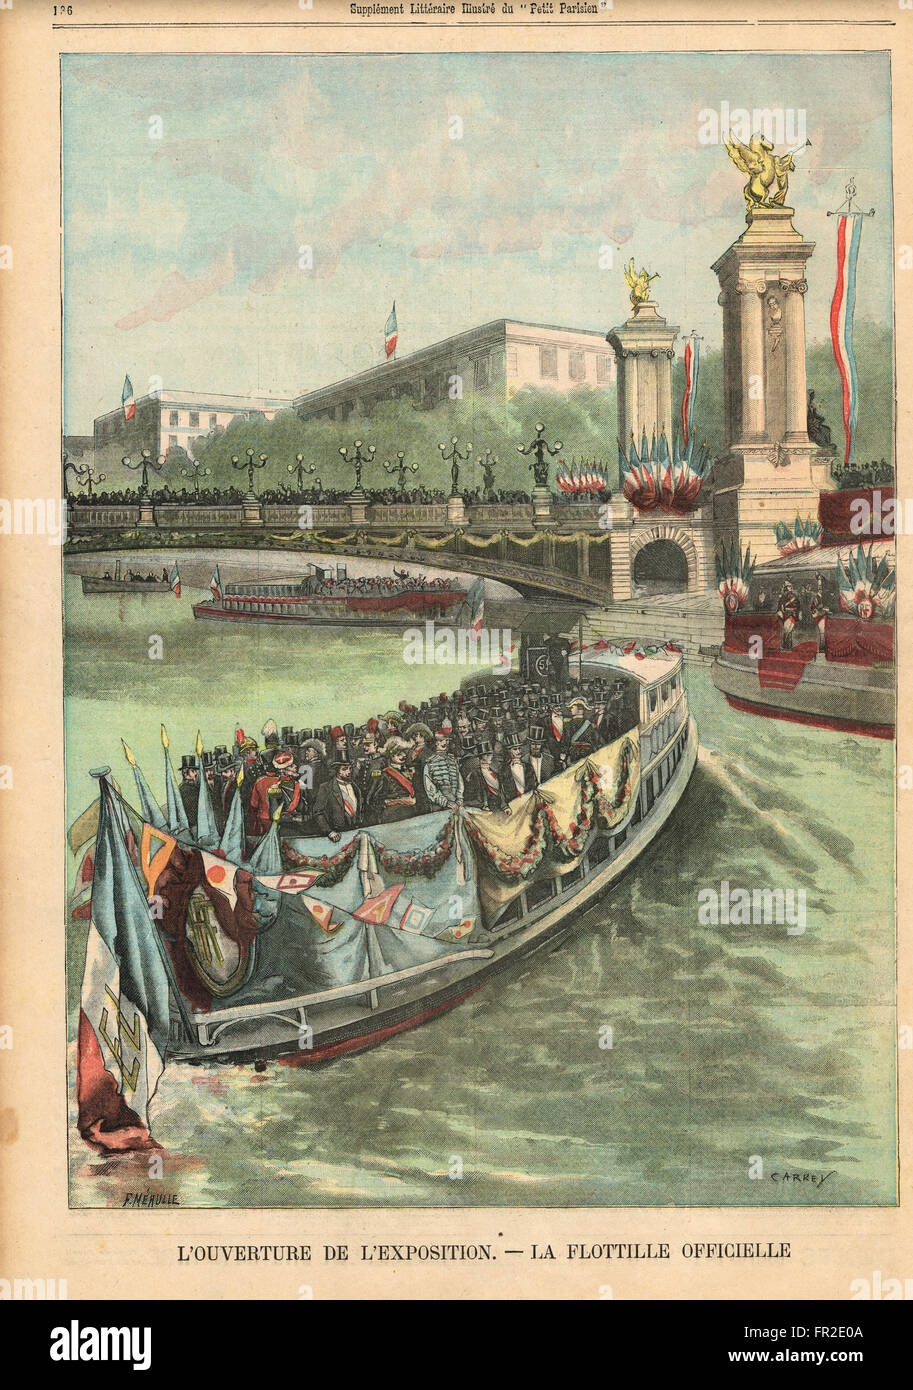 Flotilla of the officials at the opening of the Paris Exhibition 1900 - Stock Image